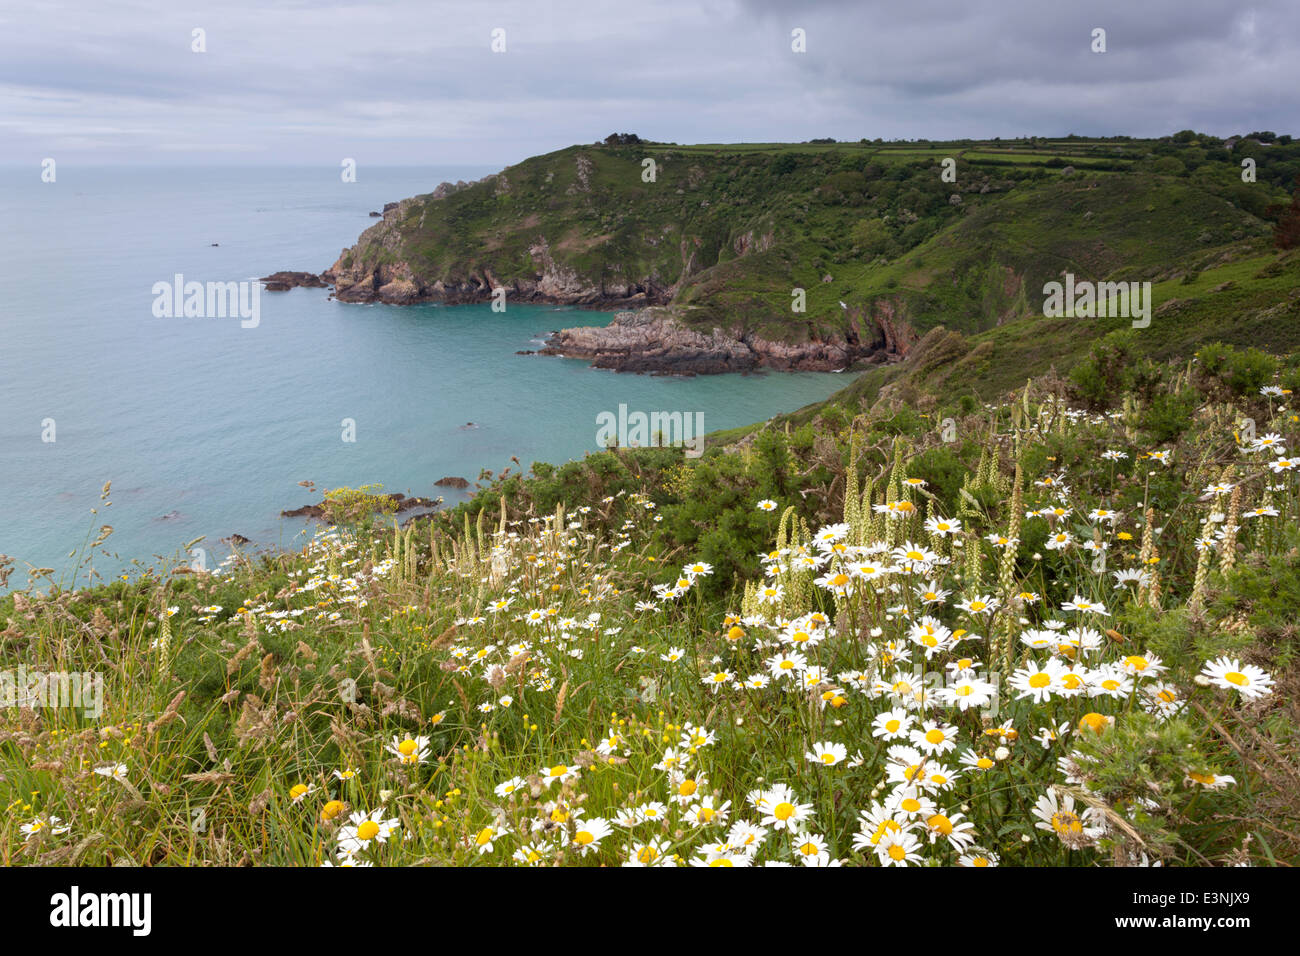 Cliffs covered in oxeye daises Petit Bot Bay Guernsey - Stock Image